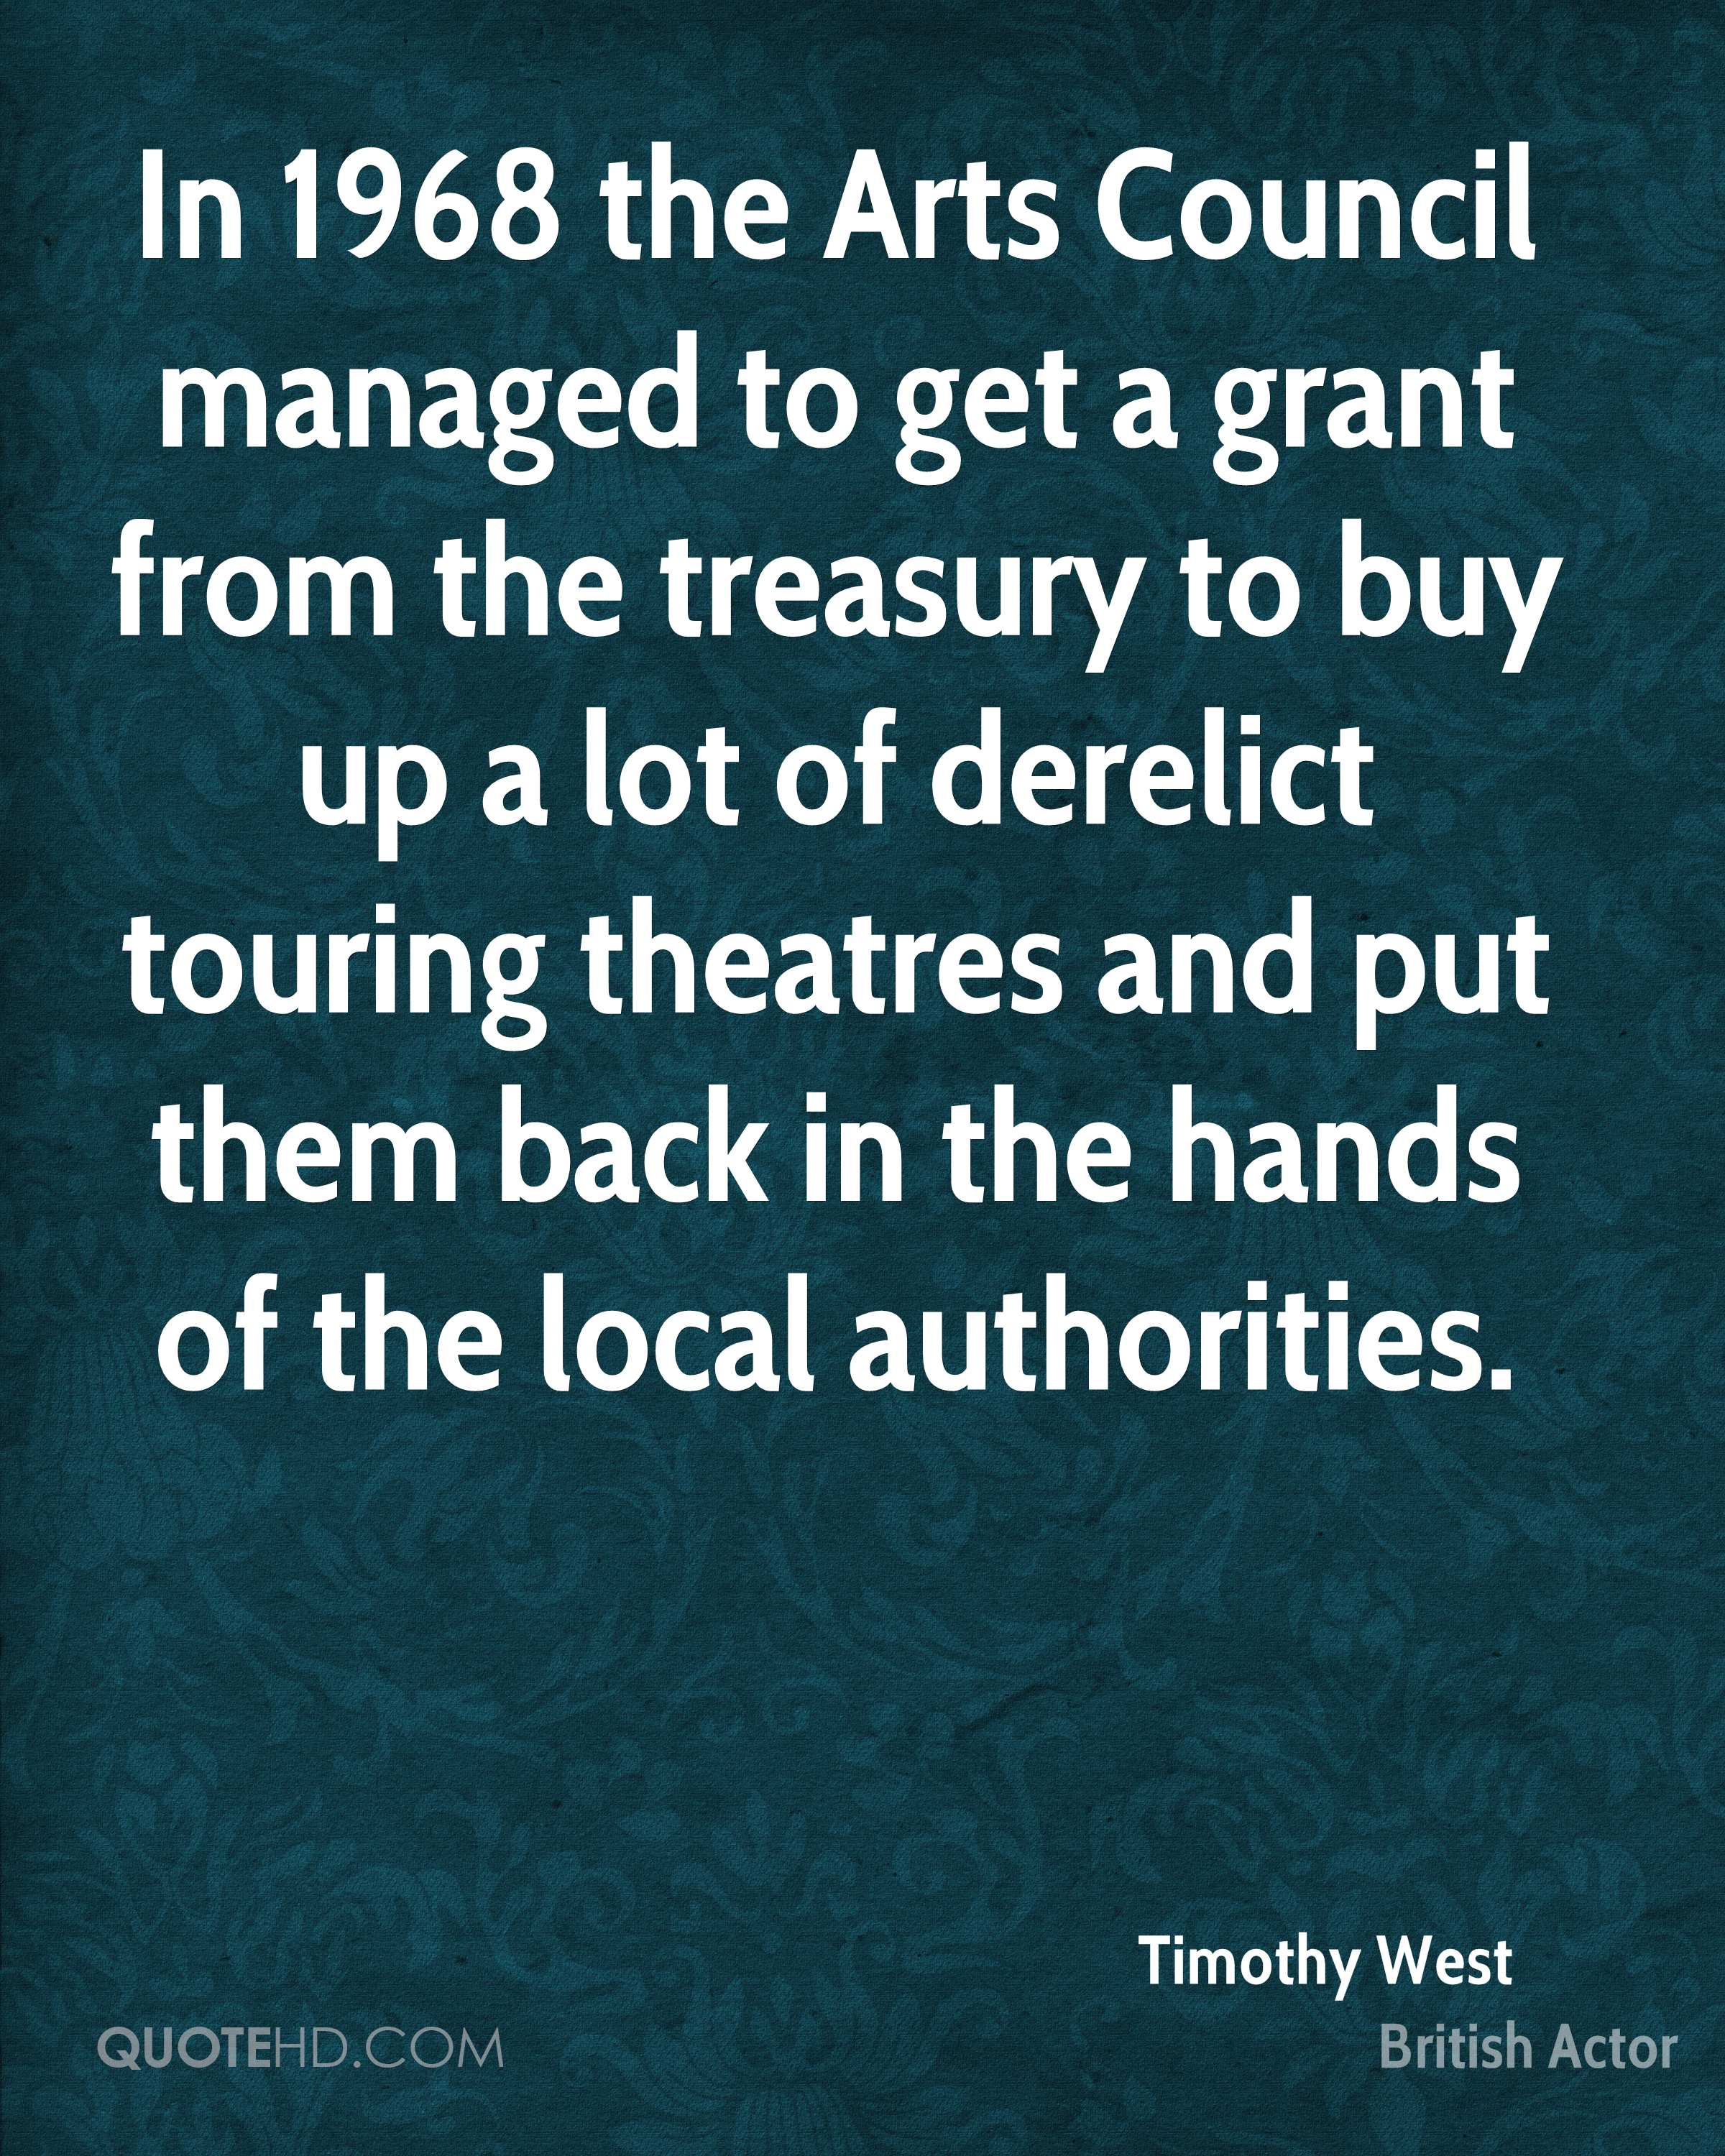 In 1968 the Arts Council managed to get a grant from the treasury to buy up a lot of derelict touring theatres and put them back in the hands of the local authorities.